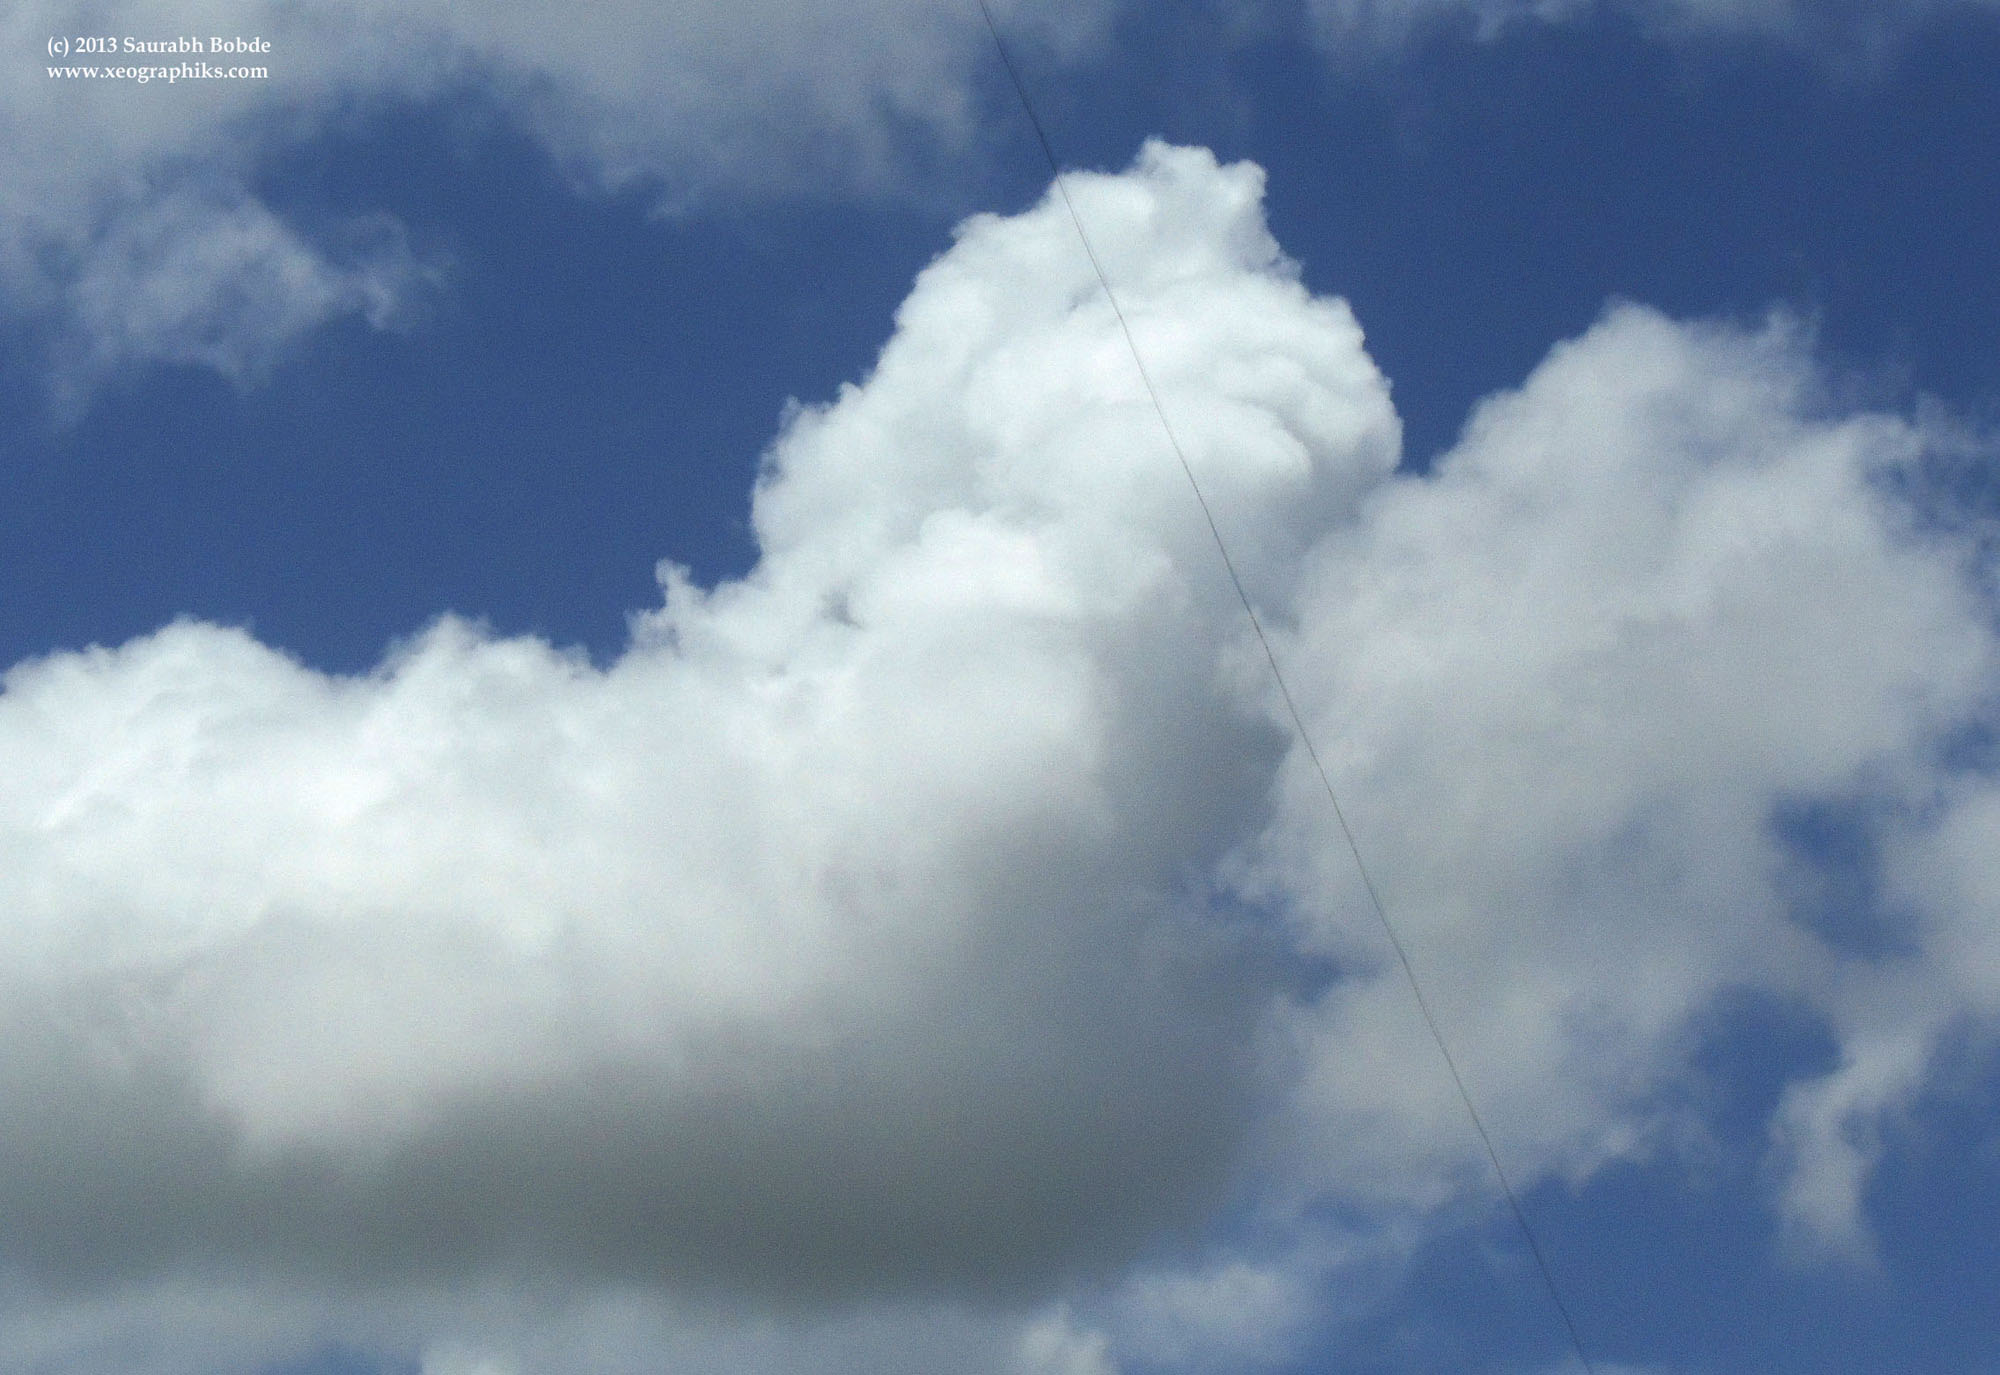 A cloud resembling a sea lion or some other mythical creature.